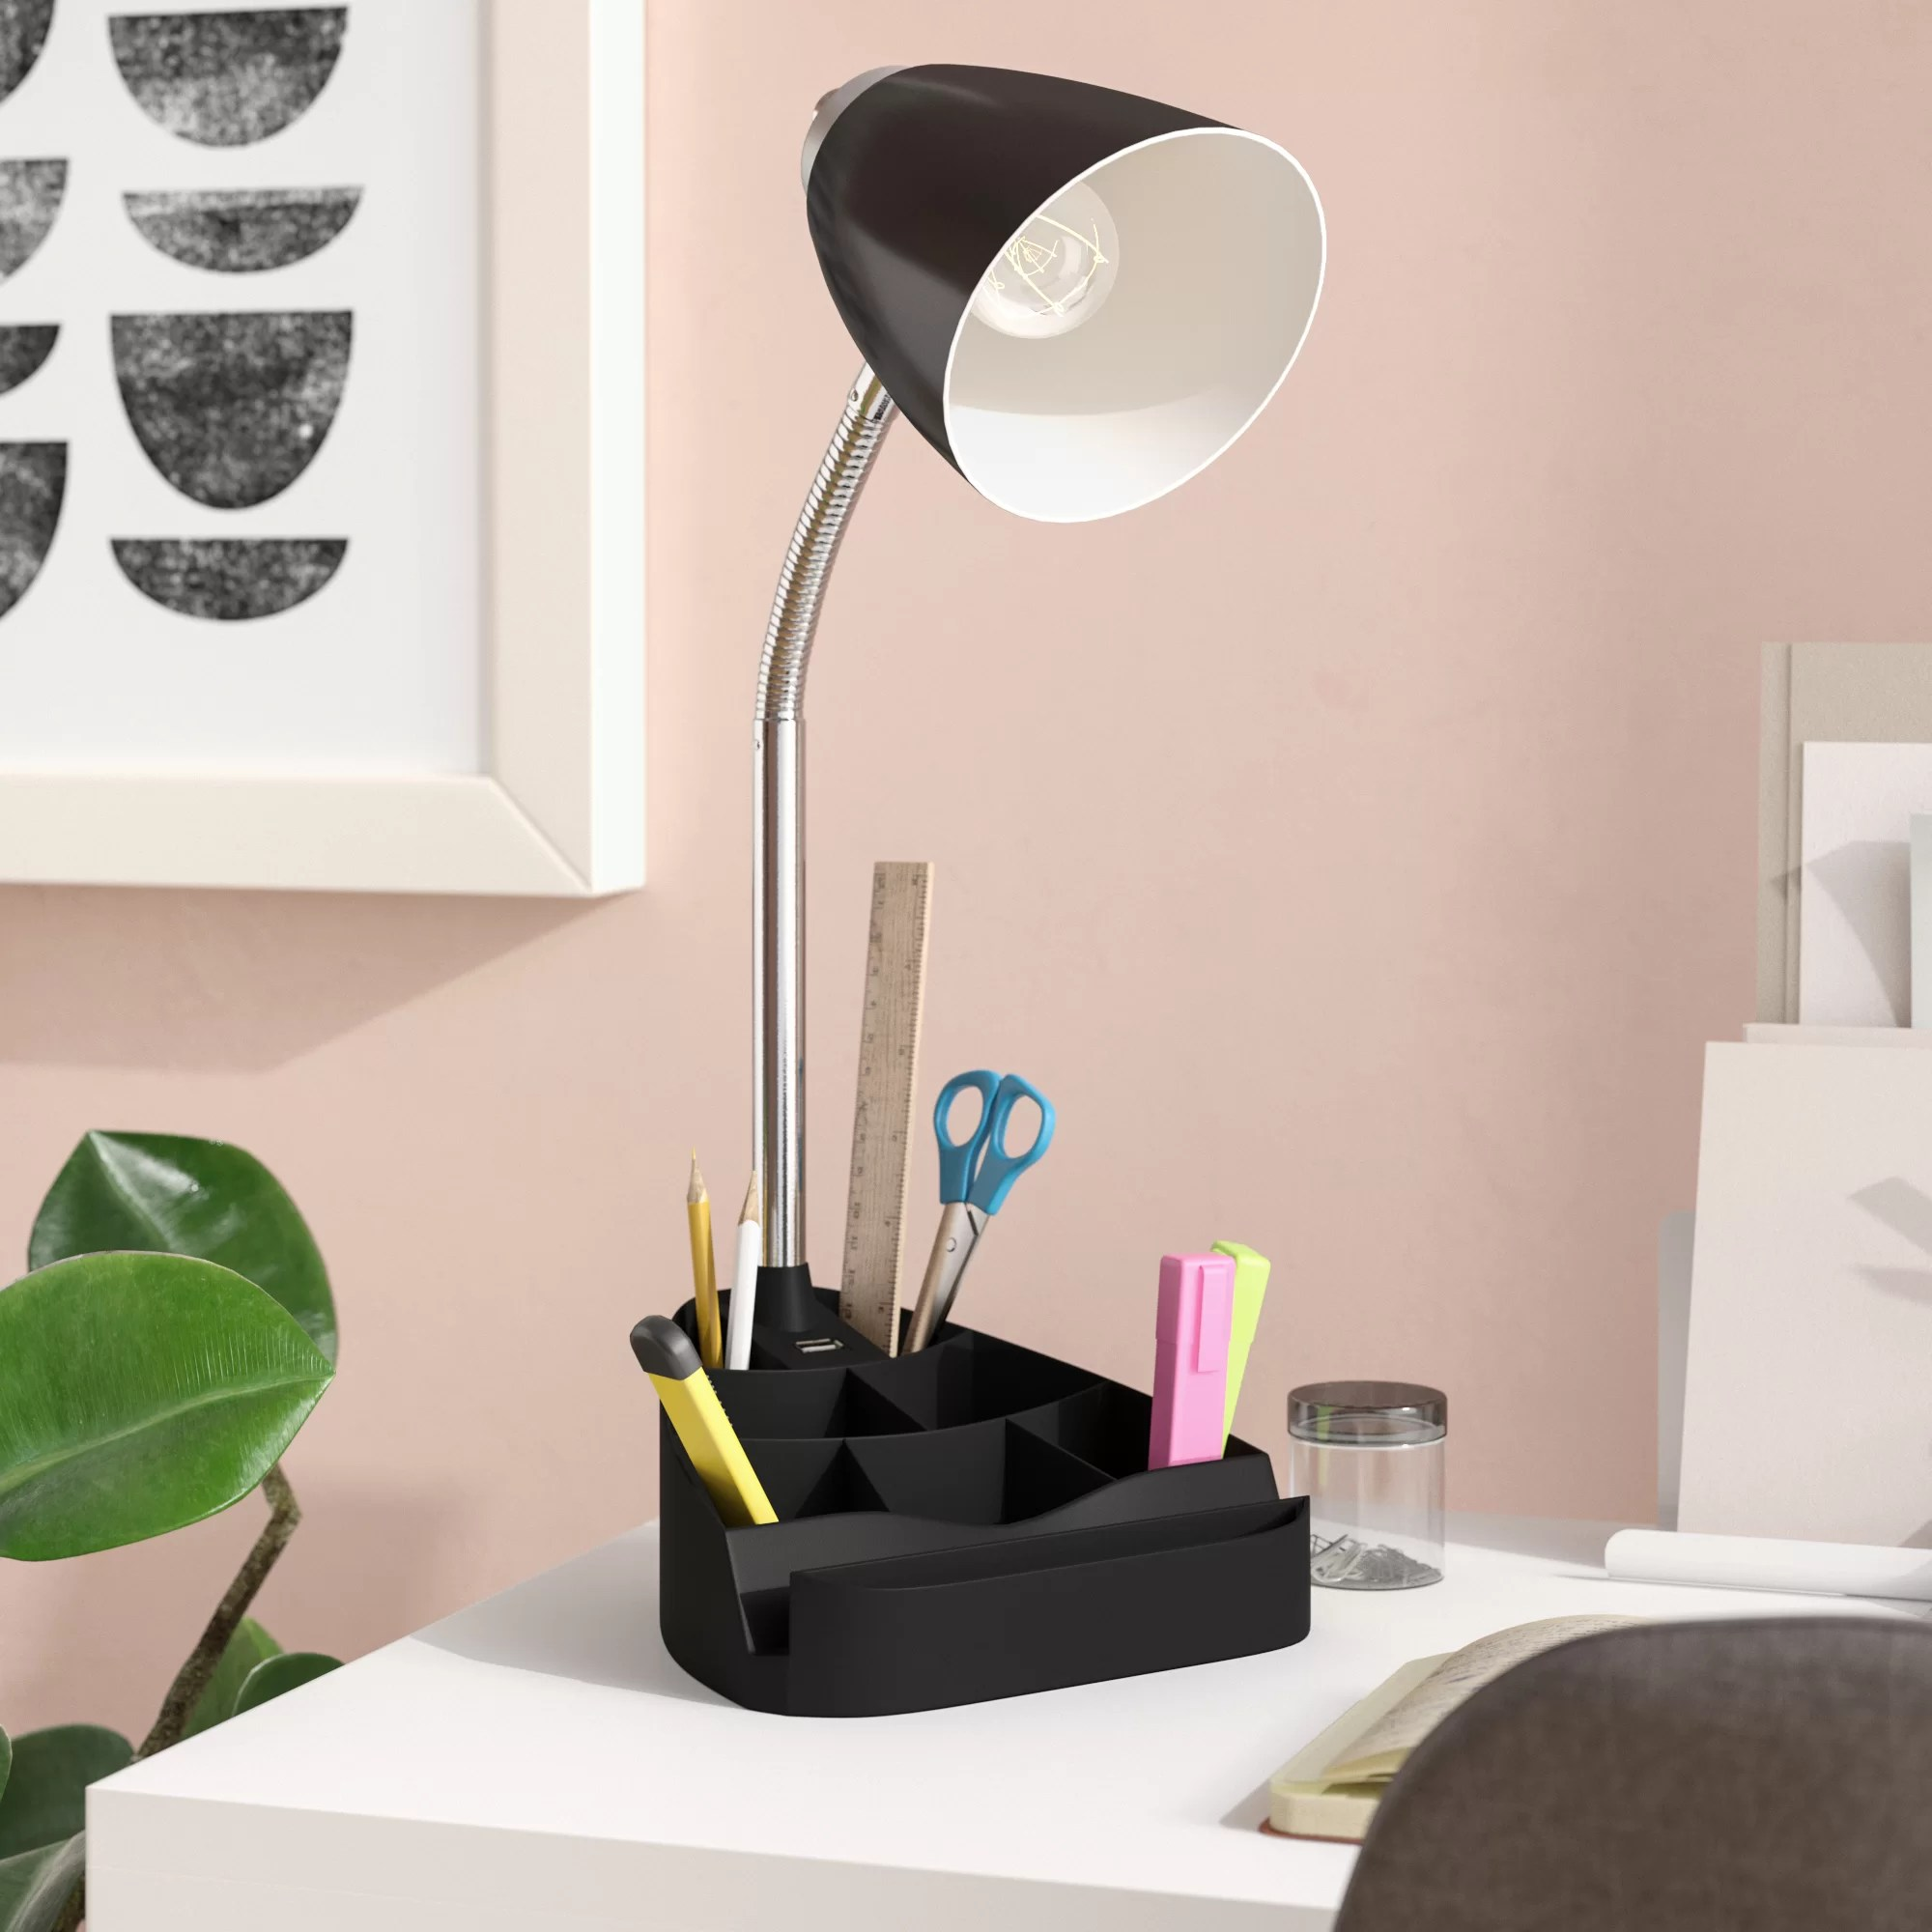 Desk Lamp Usb Port 18 5